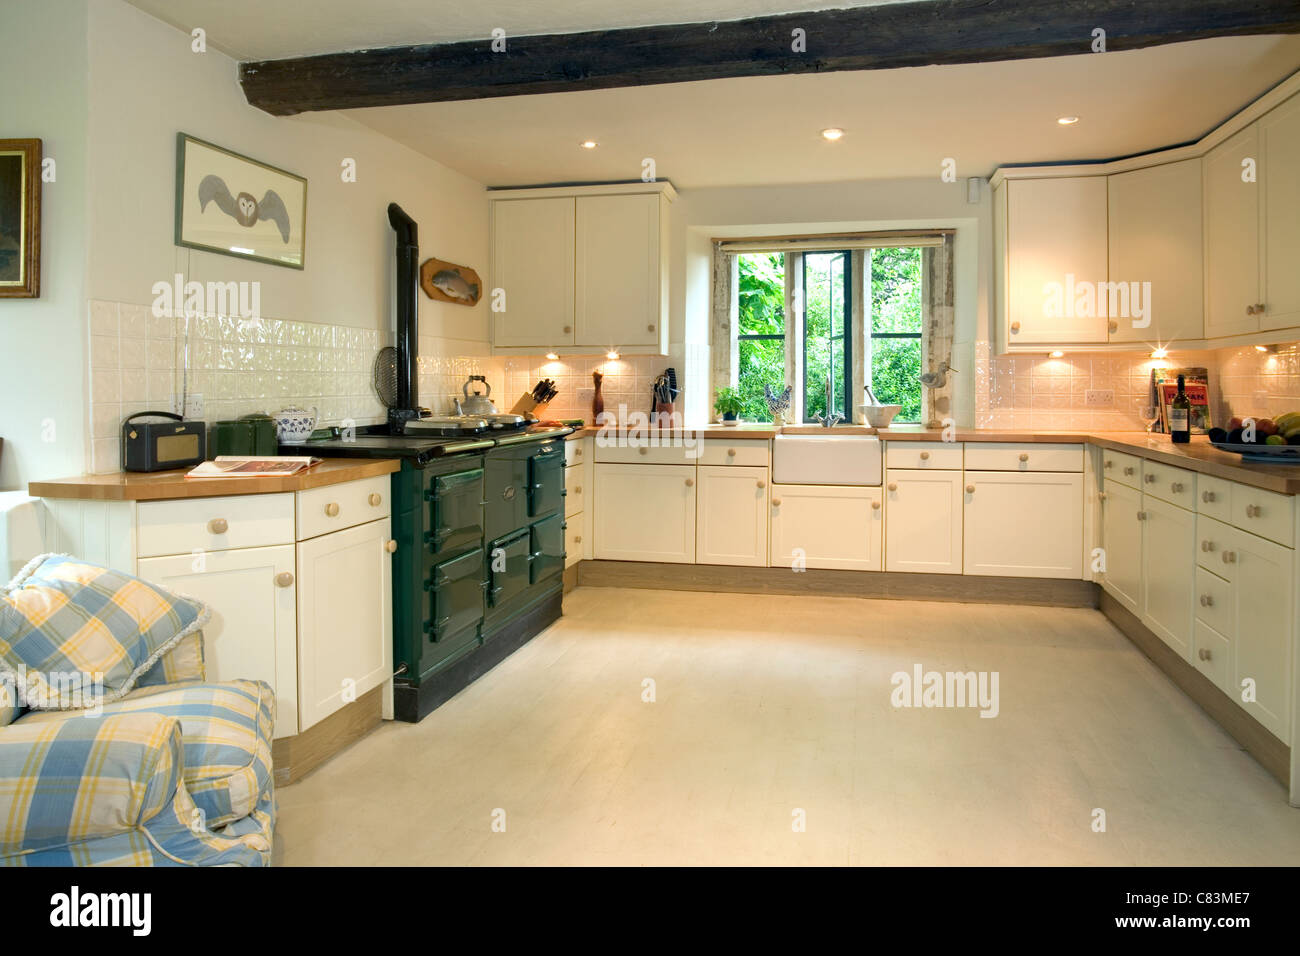 Contemporary Style Kitchen With Aga Cooker And Butlers Sink Stock Photo Alamy